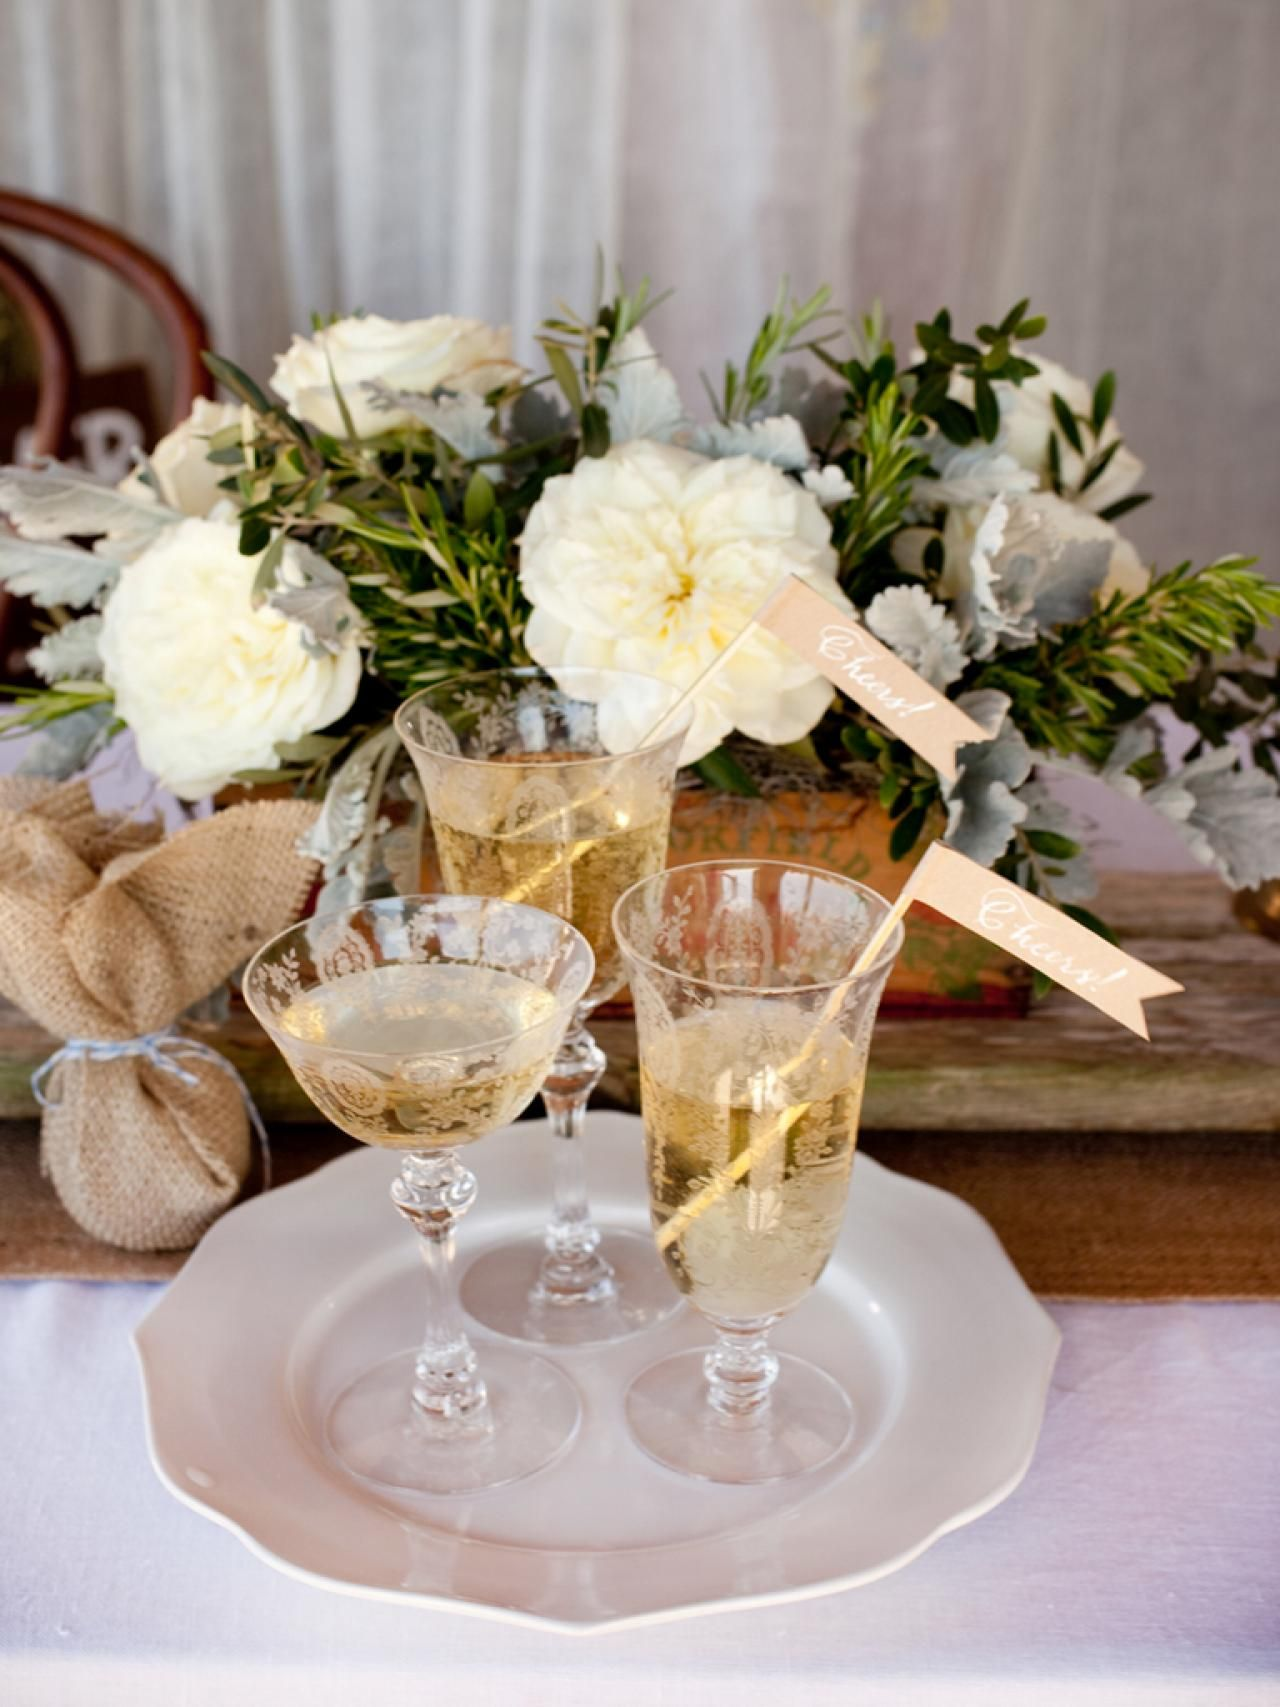 Rustic wedding decorations you can make rustic style diy save money on your wedding decor with country and rustic style decorations you can junglespirit Image collections